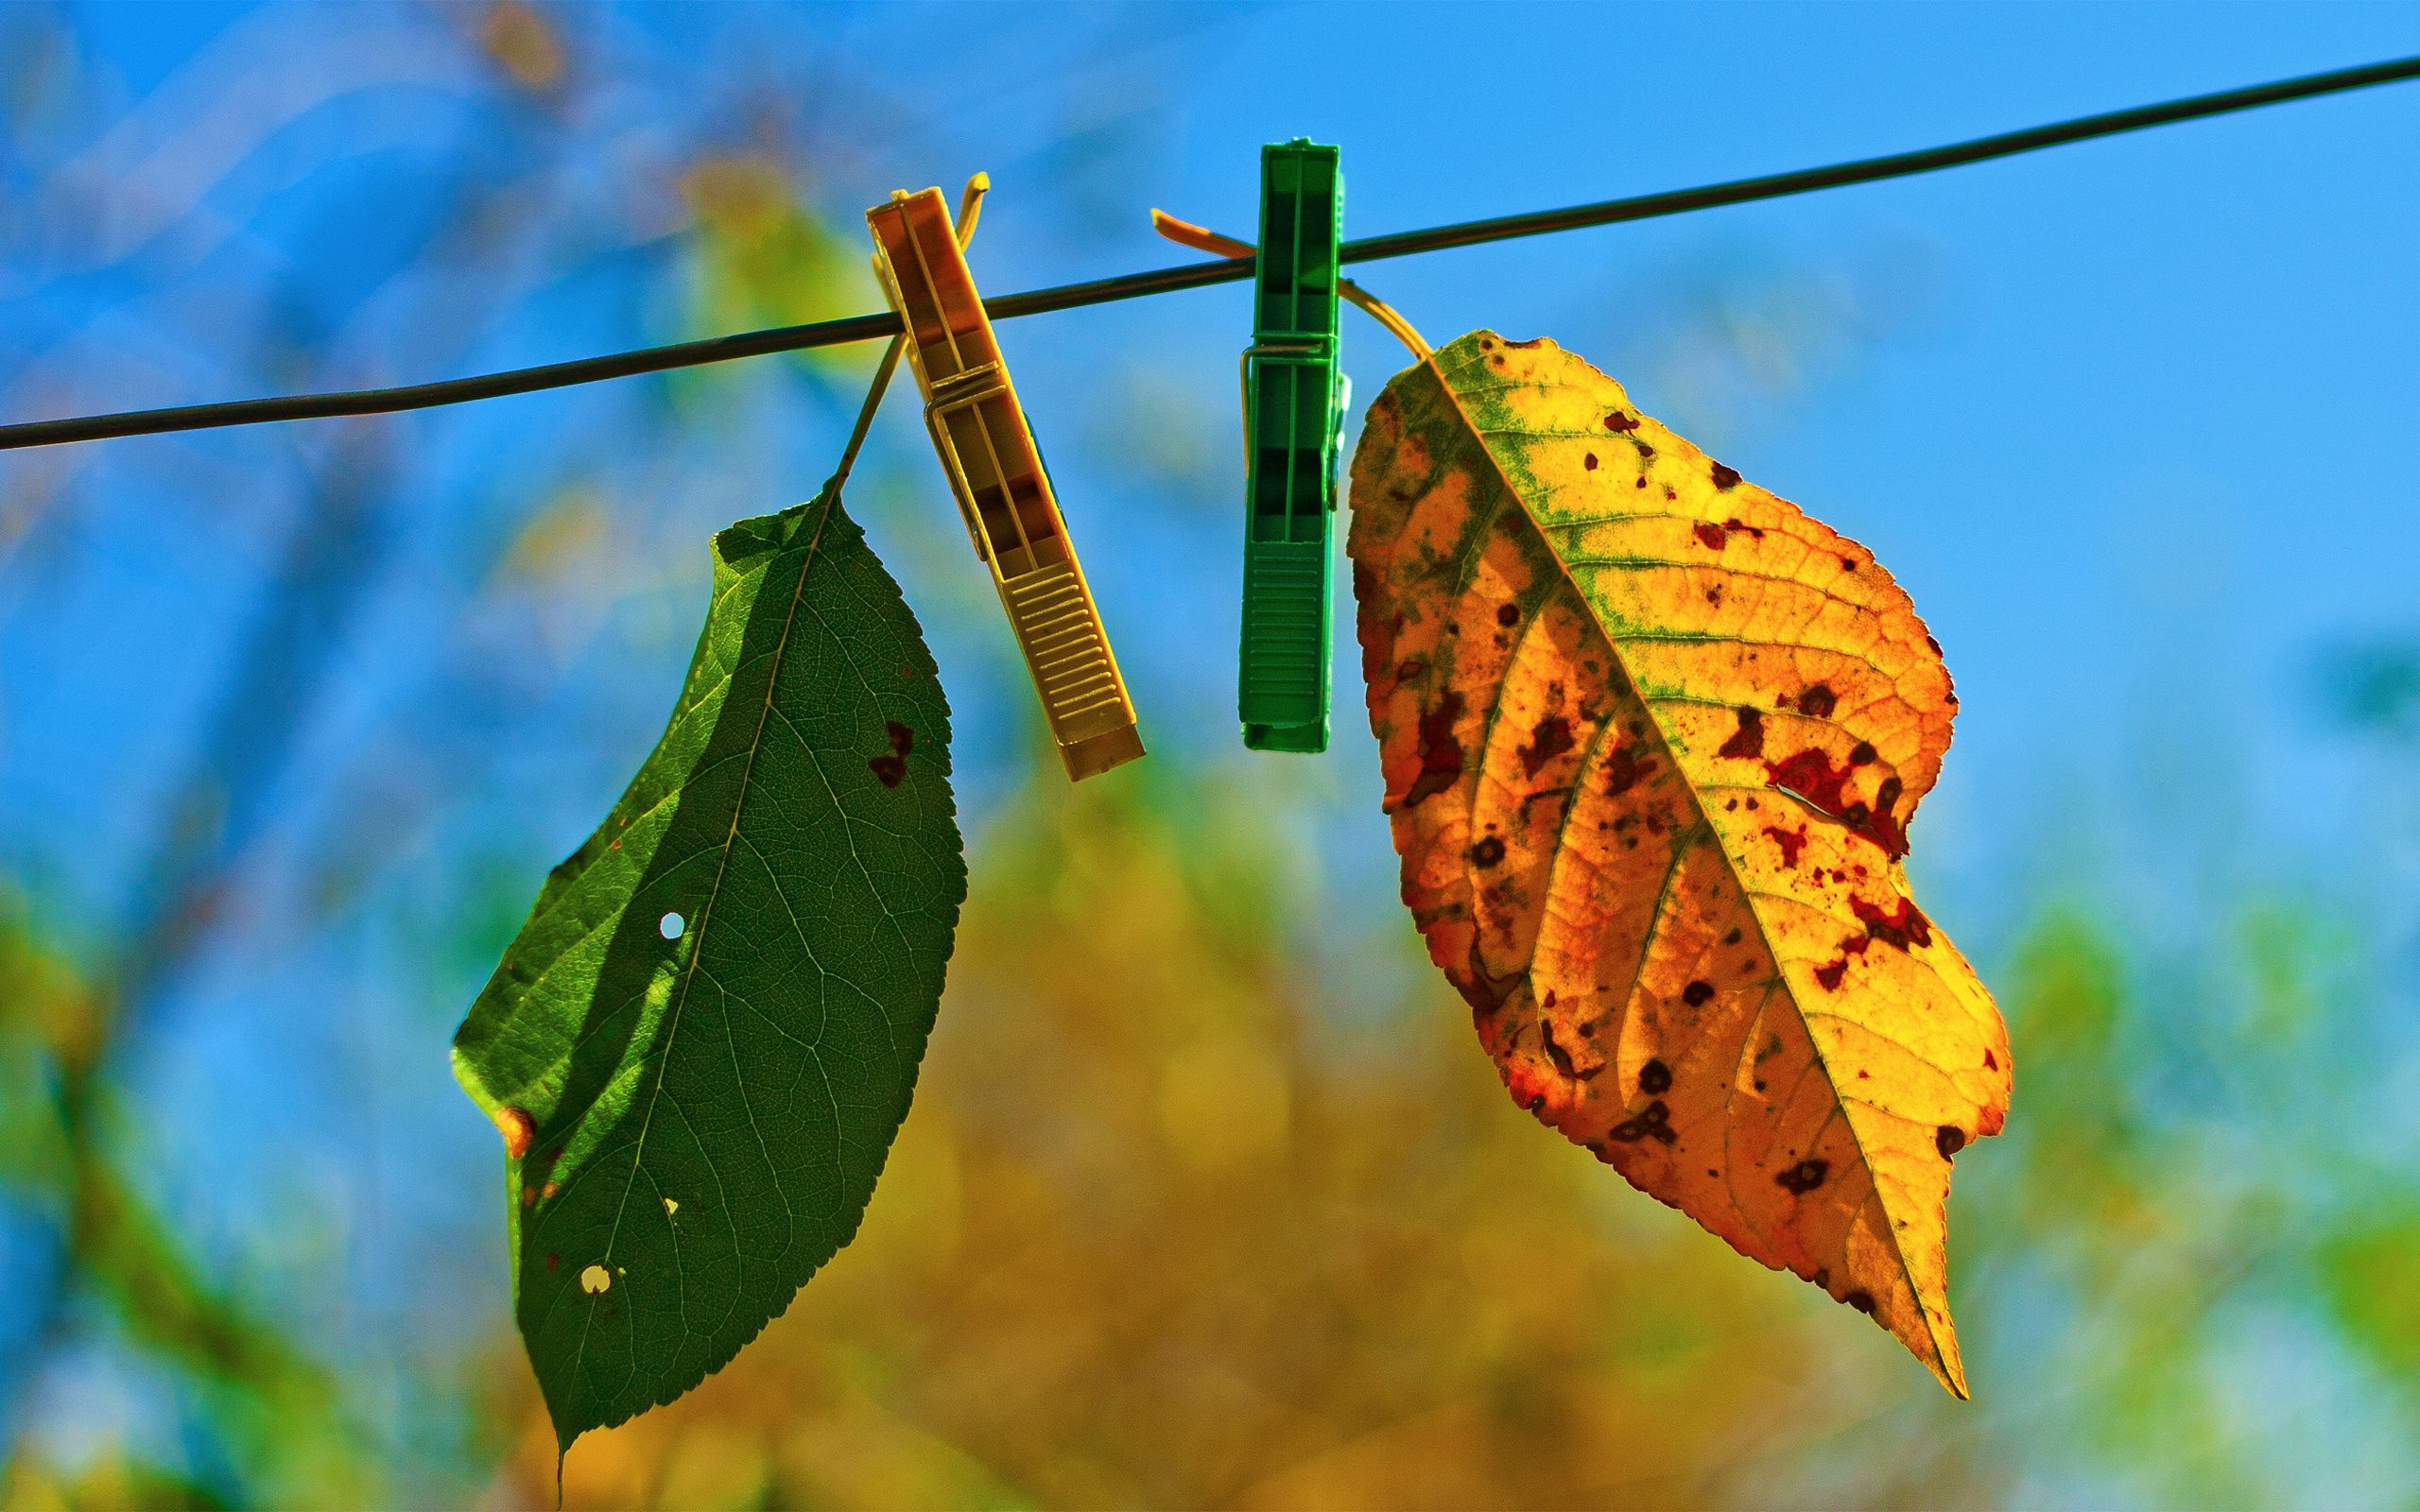 89846 download wallpaper Macro, Leaves, Hang, Rope, Sky, Autumn, Clothespins screensavers and pictures for free